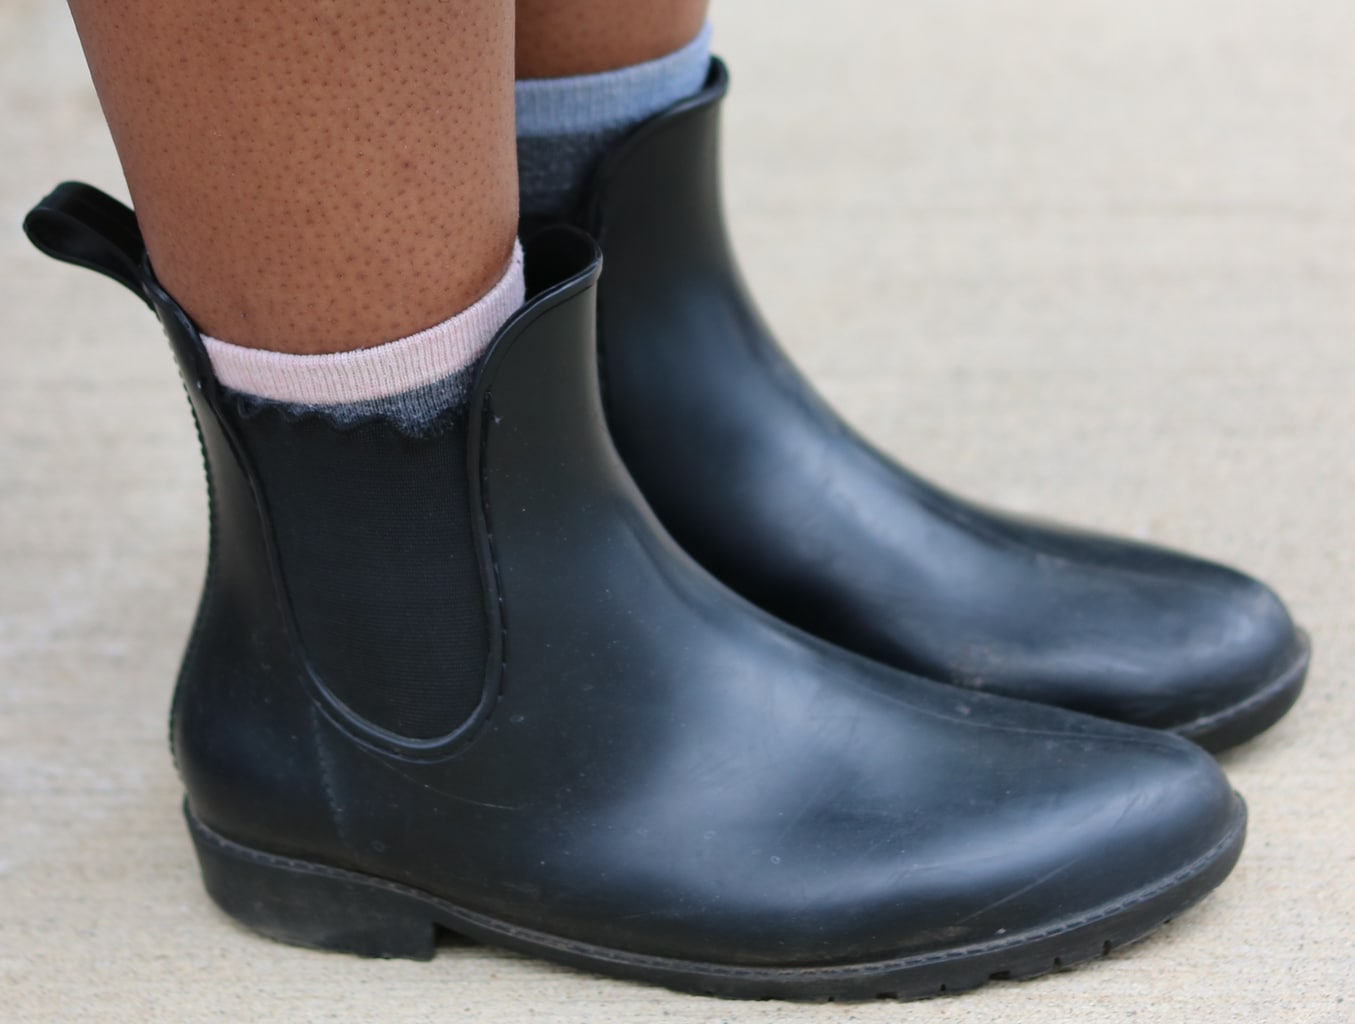 Cynthia wears flat black Chelsea rubber rain boots with different colored socks peeking out.